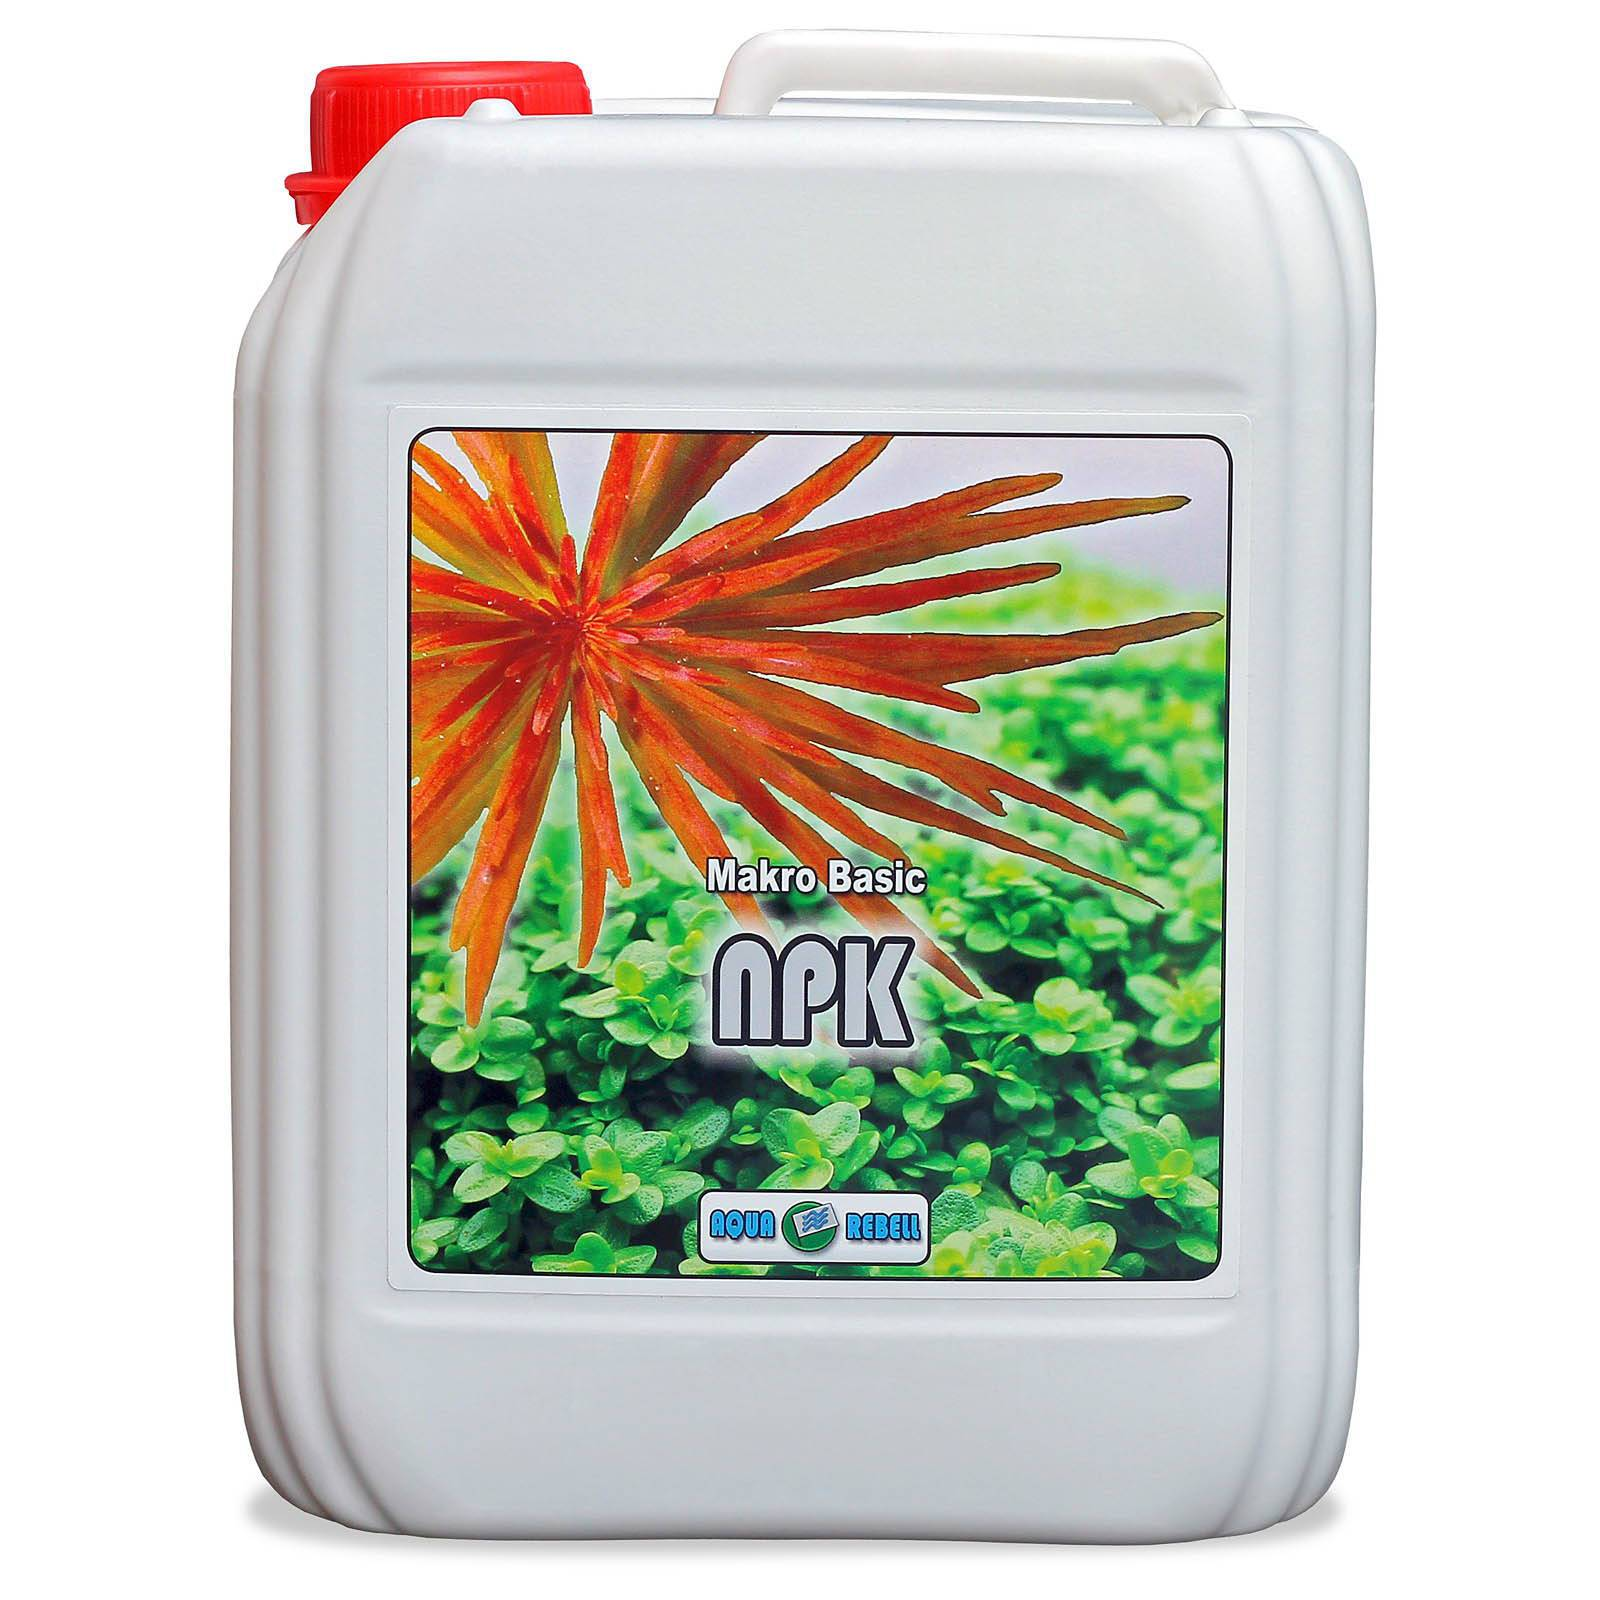 Aqua Rebell - Makro Basic - NPK - 5.000 ml